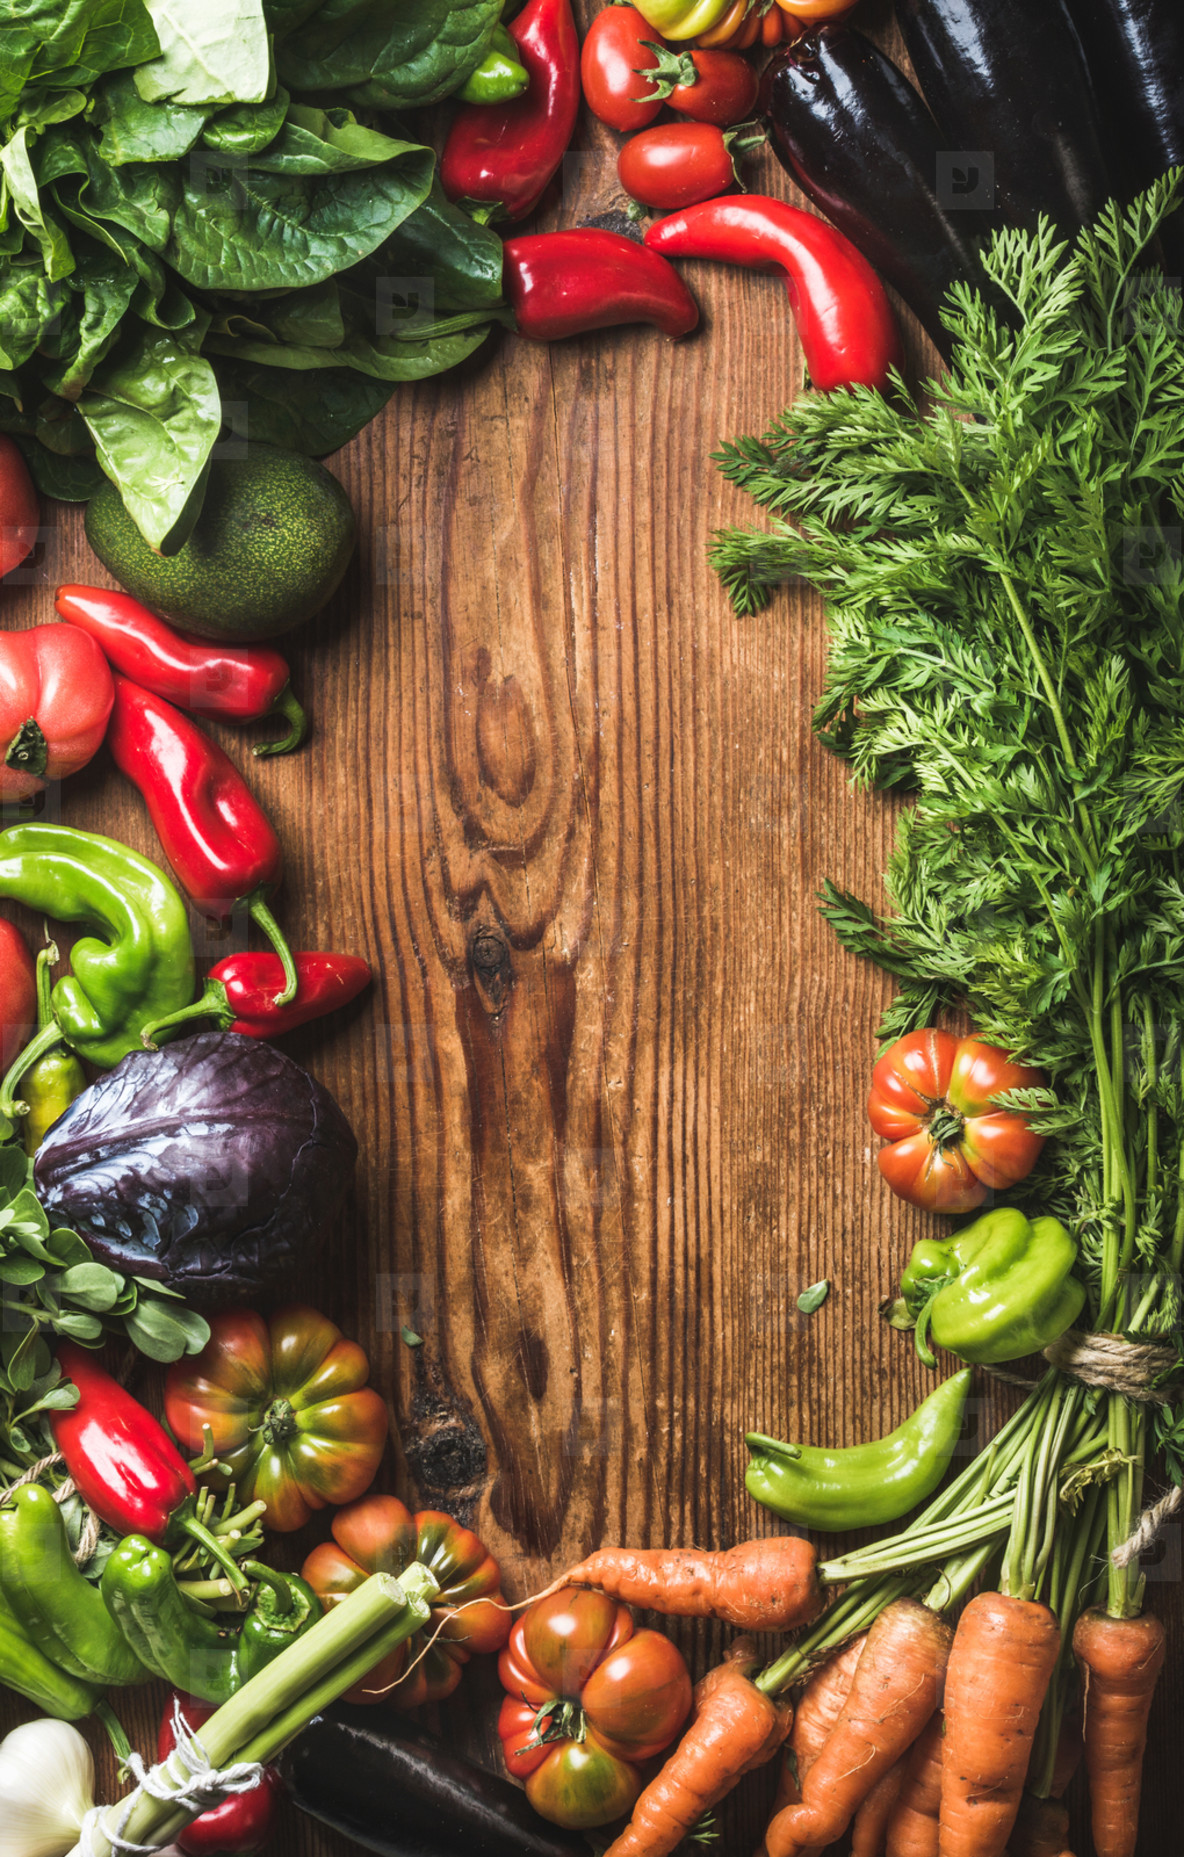 Fresh raw vegetable ingredients for healthy cooking or salad making over rustic wood background  top view  copy space  horizotal composition